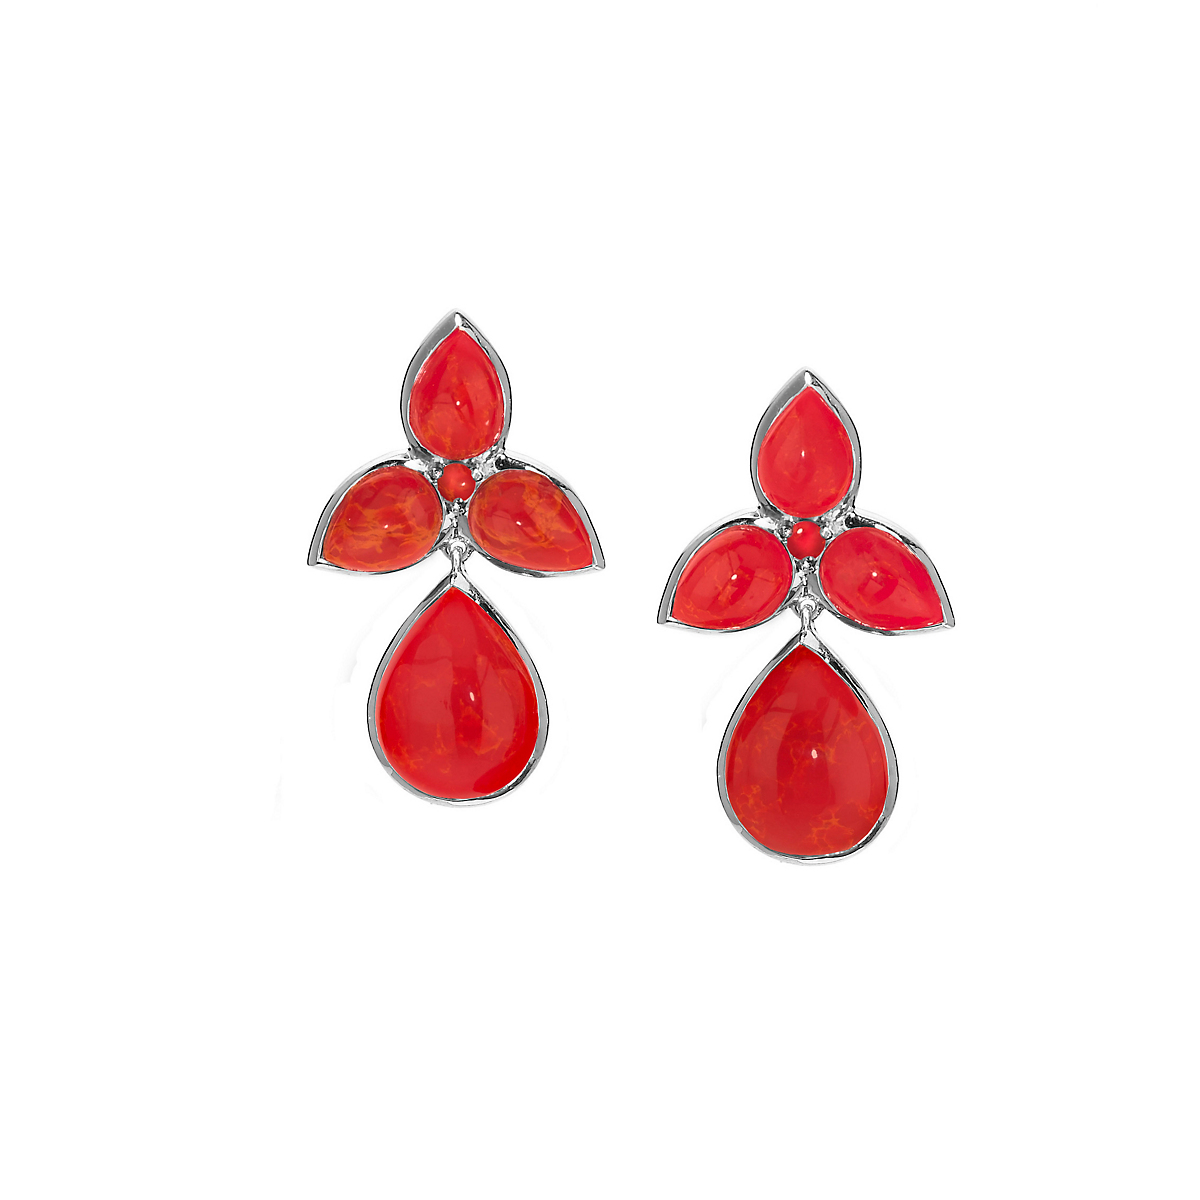 Elizabeth Showers Orange Coral Silver Mariposa Teardrop Earrings